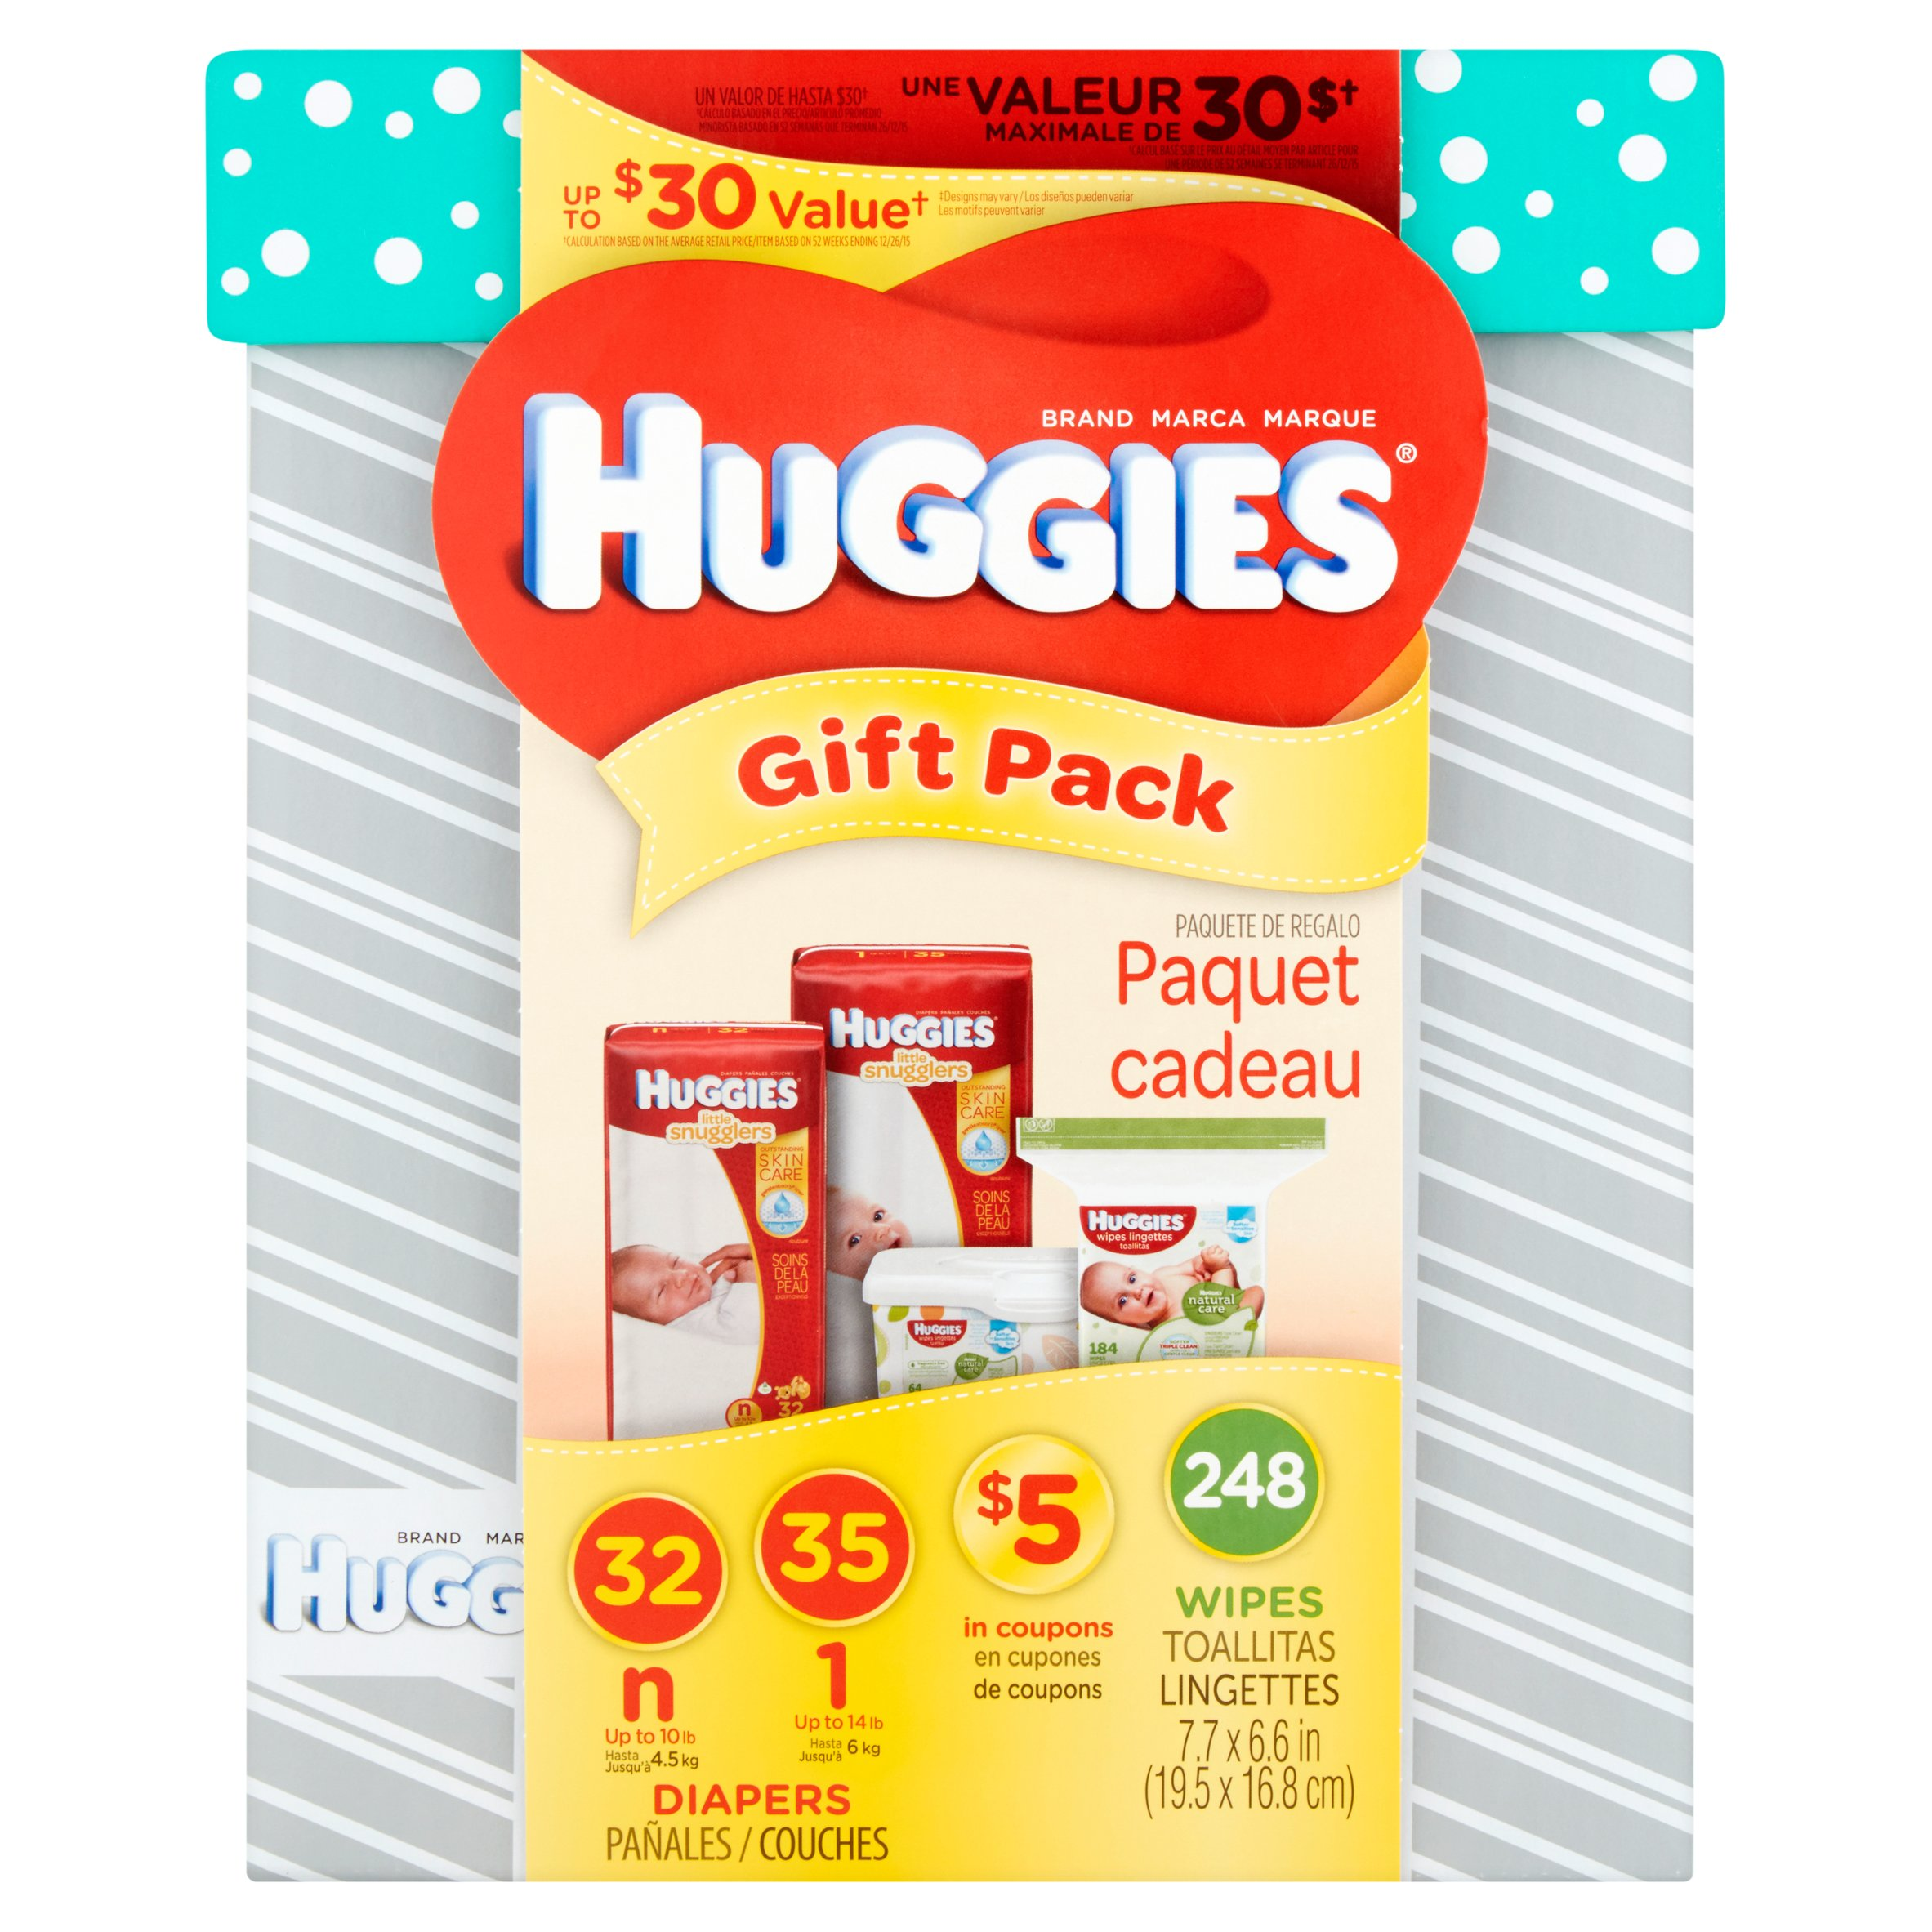 Huggies Gift Pack